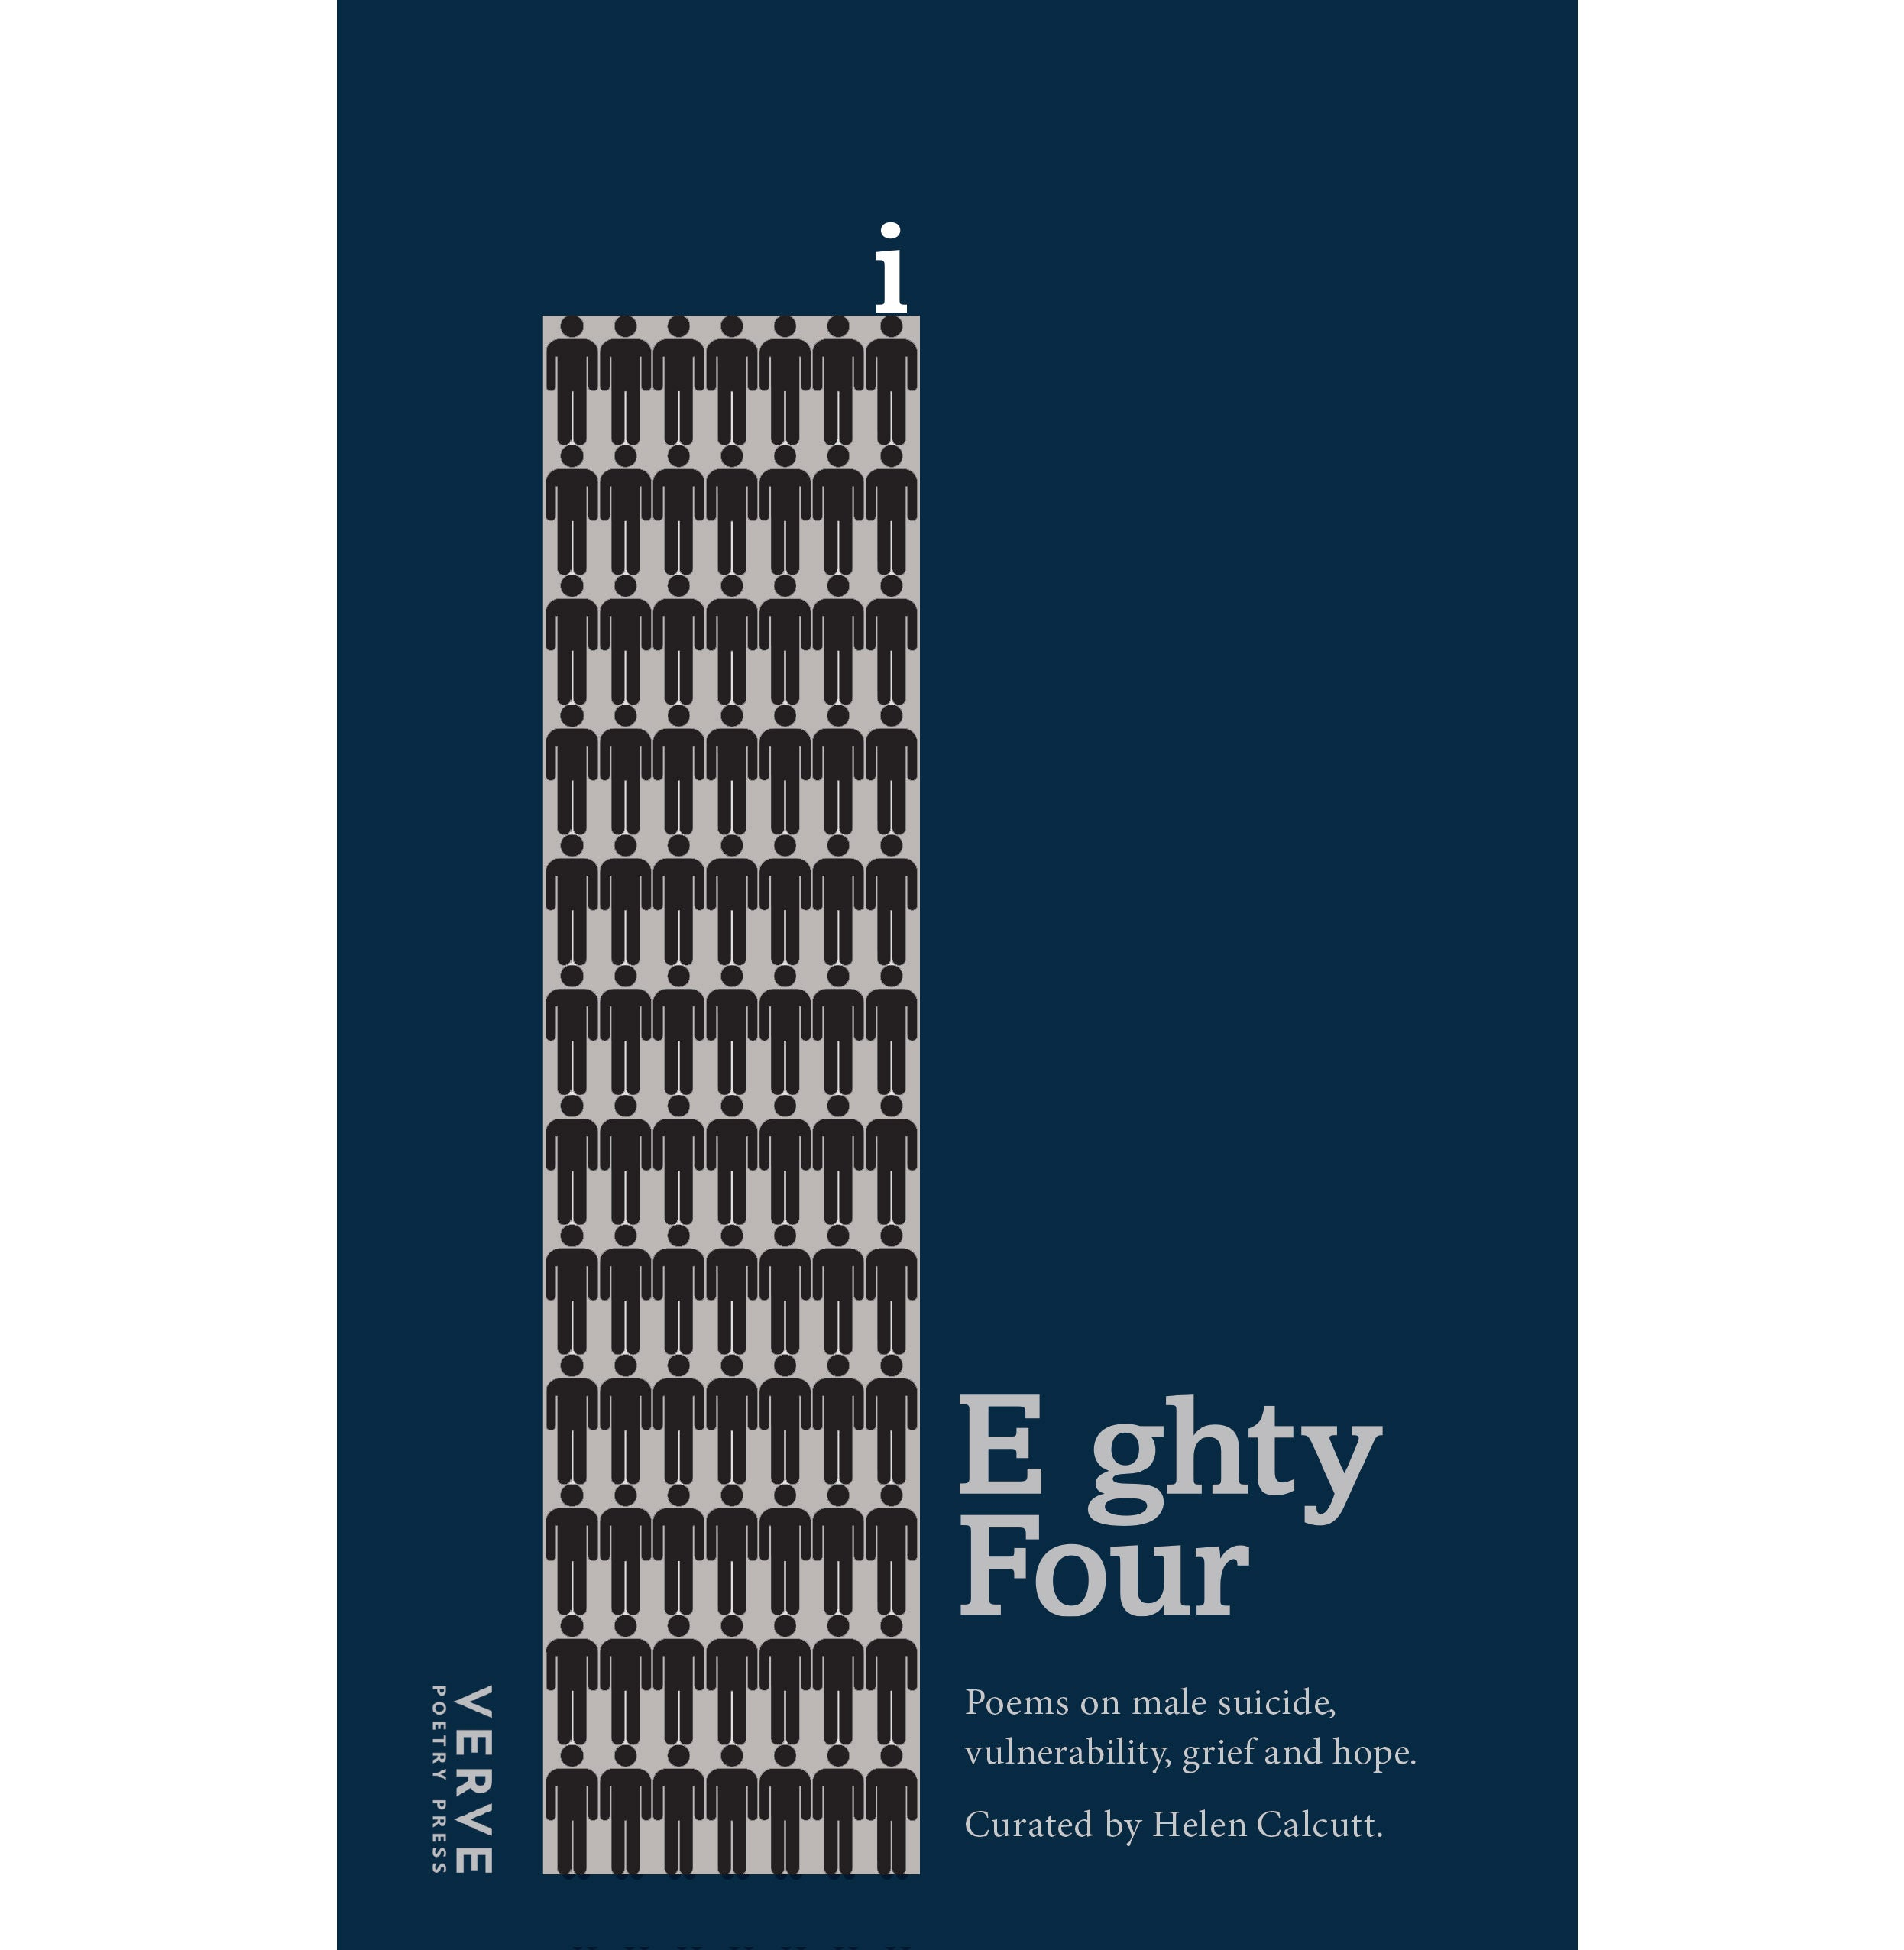 Eighty Four: Poems on Male Suicide, Vulnerability, Grief and Hope